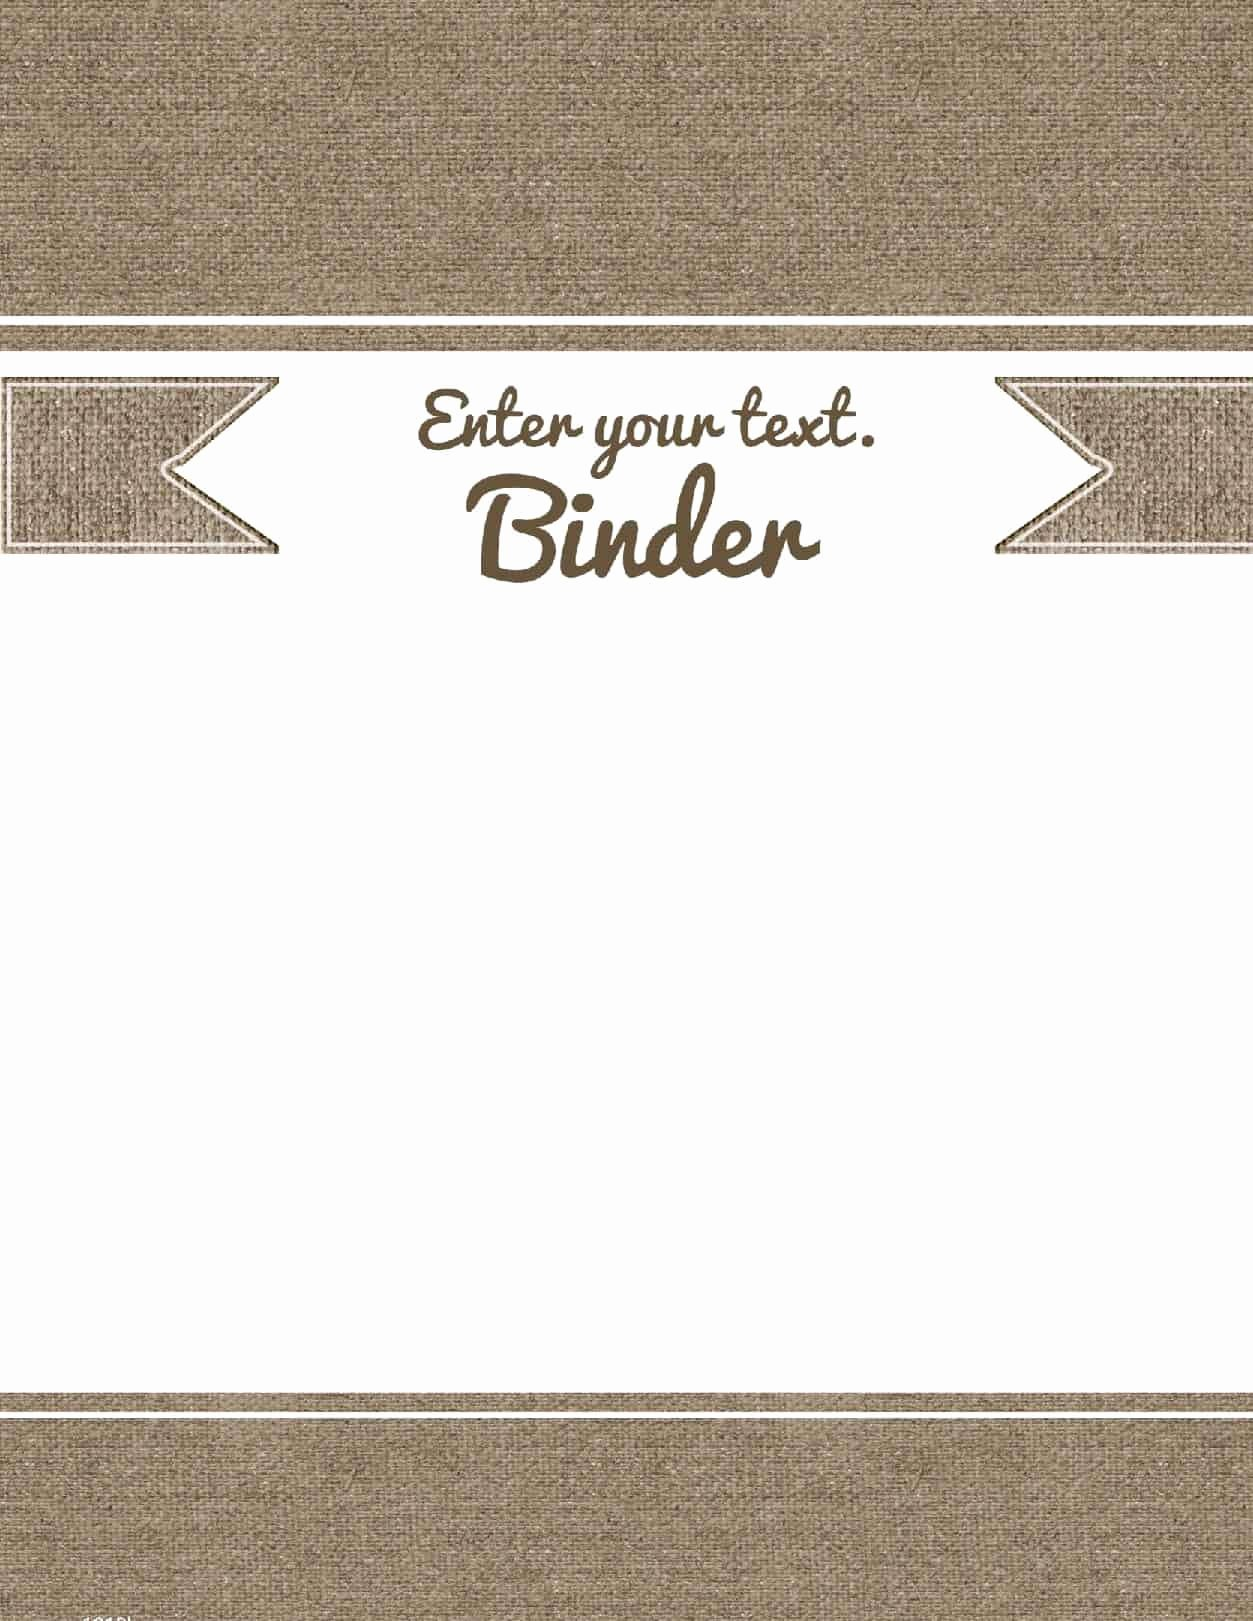 Notebook Cover Design Template Elegant Free Binder Cover Templates